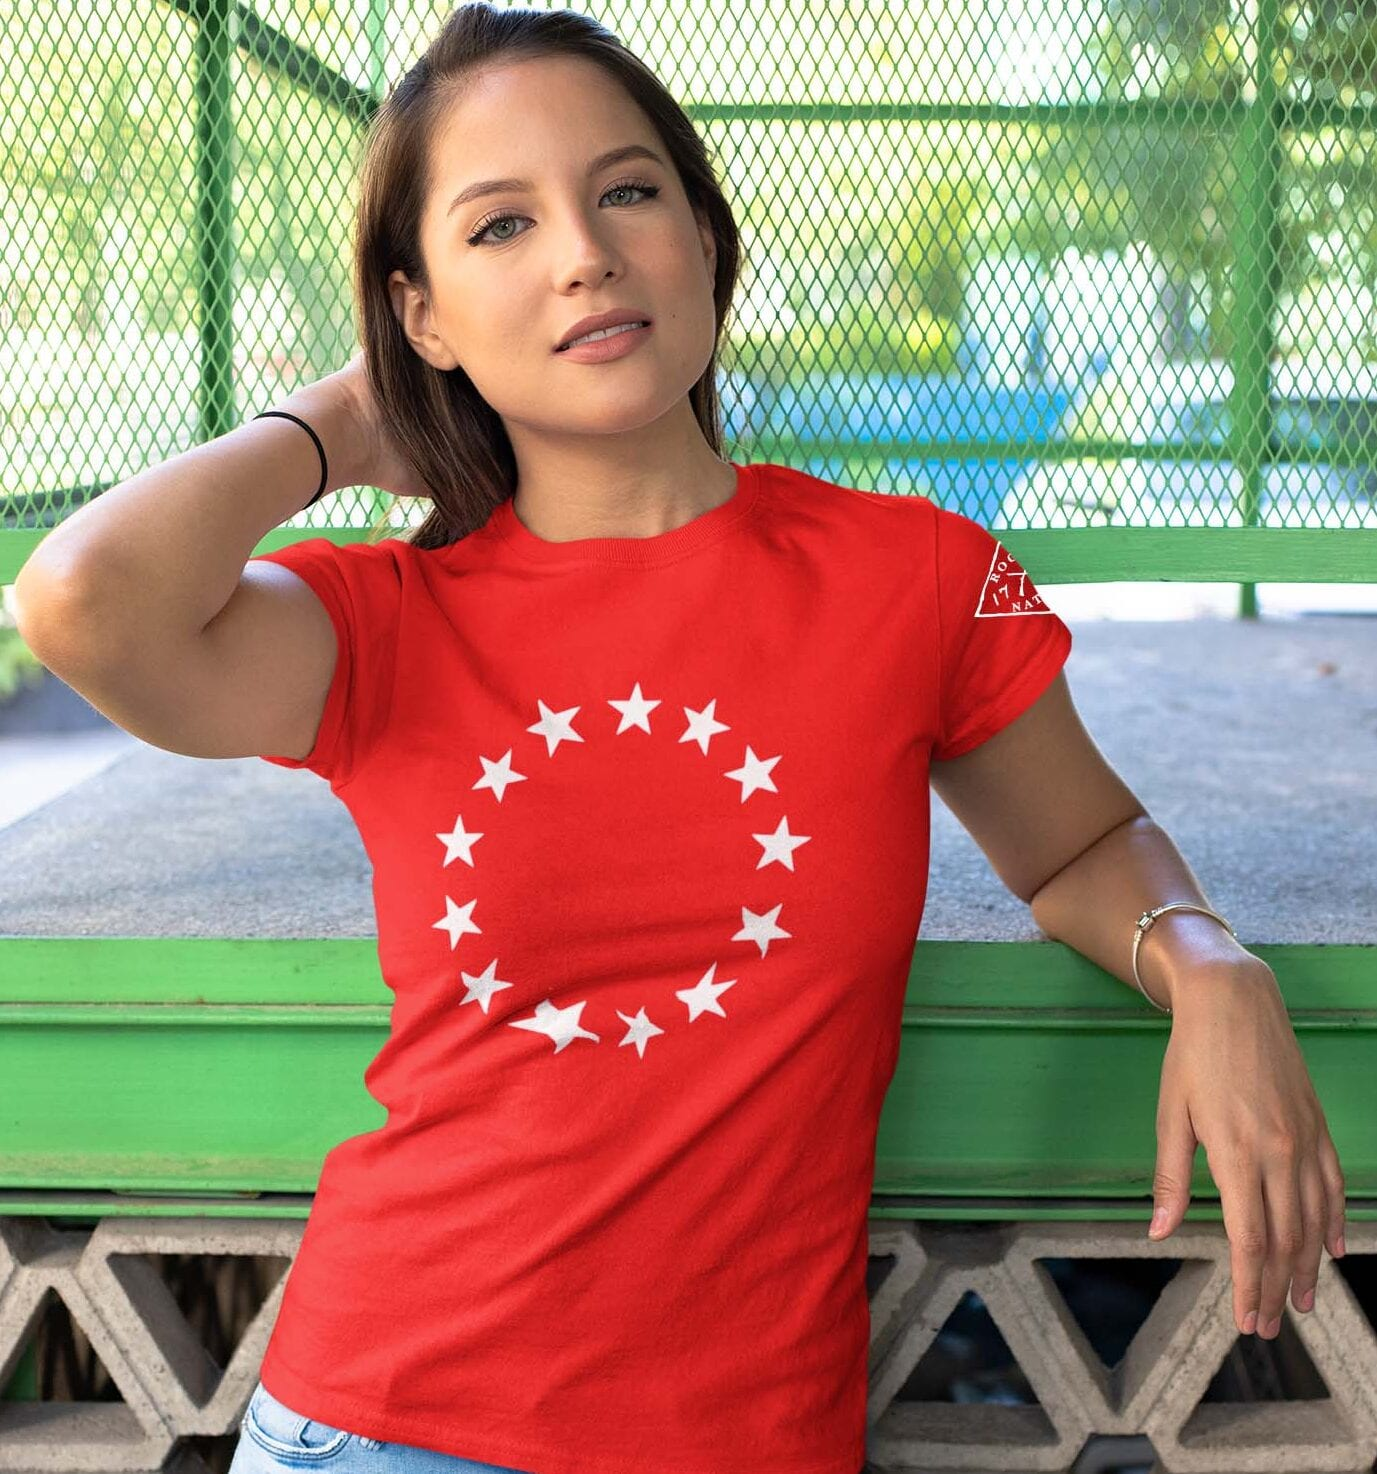 Betsy Stars on a women's Red t-shirt